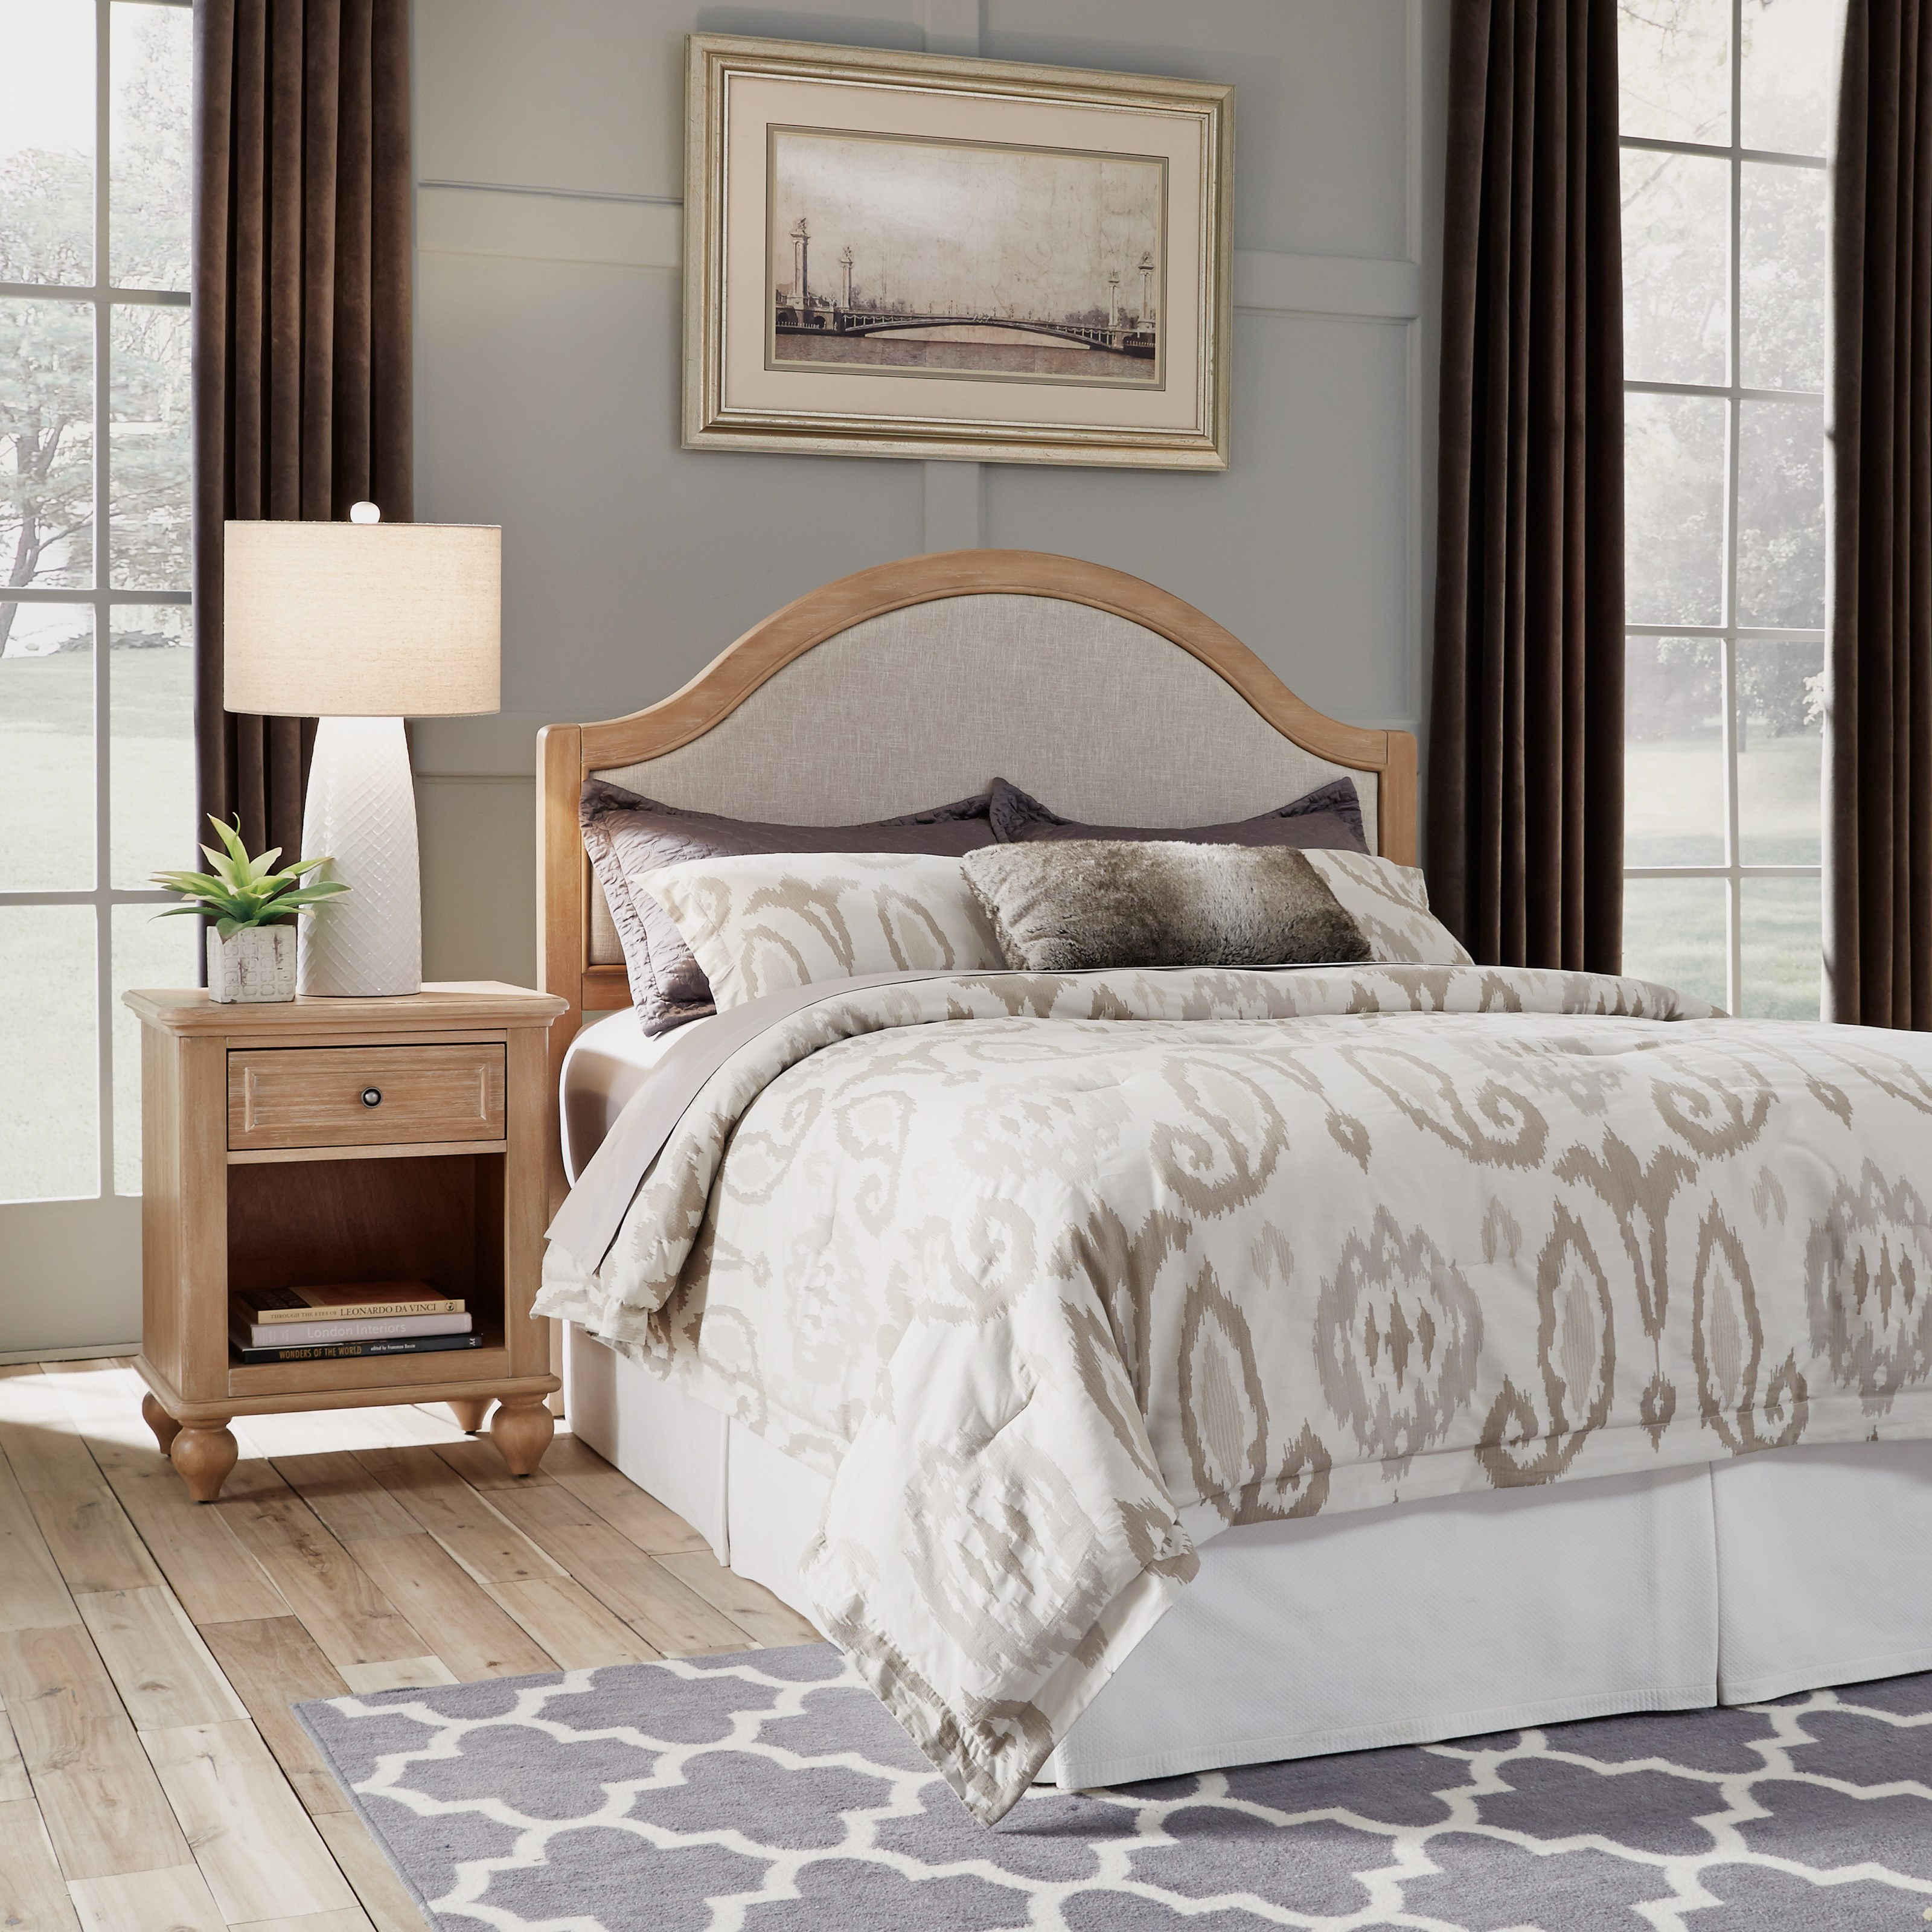 Cambridge Queen Headboard & Nightstand by Homestyles at Northeast Factory Direct